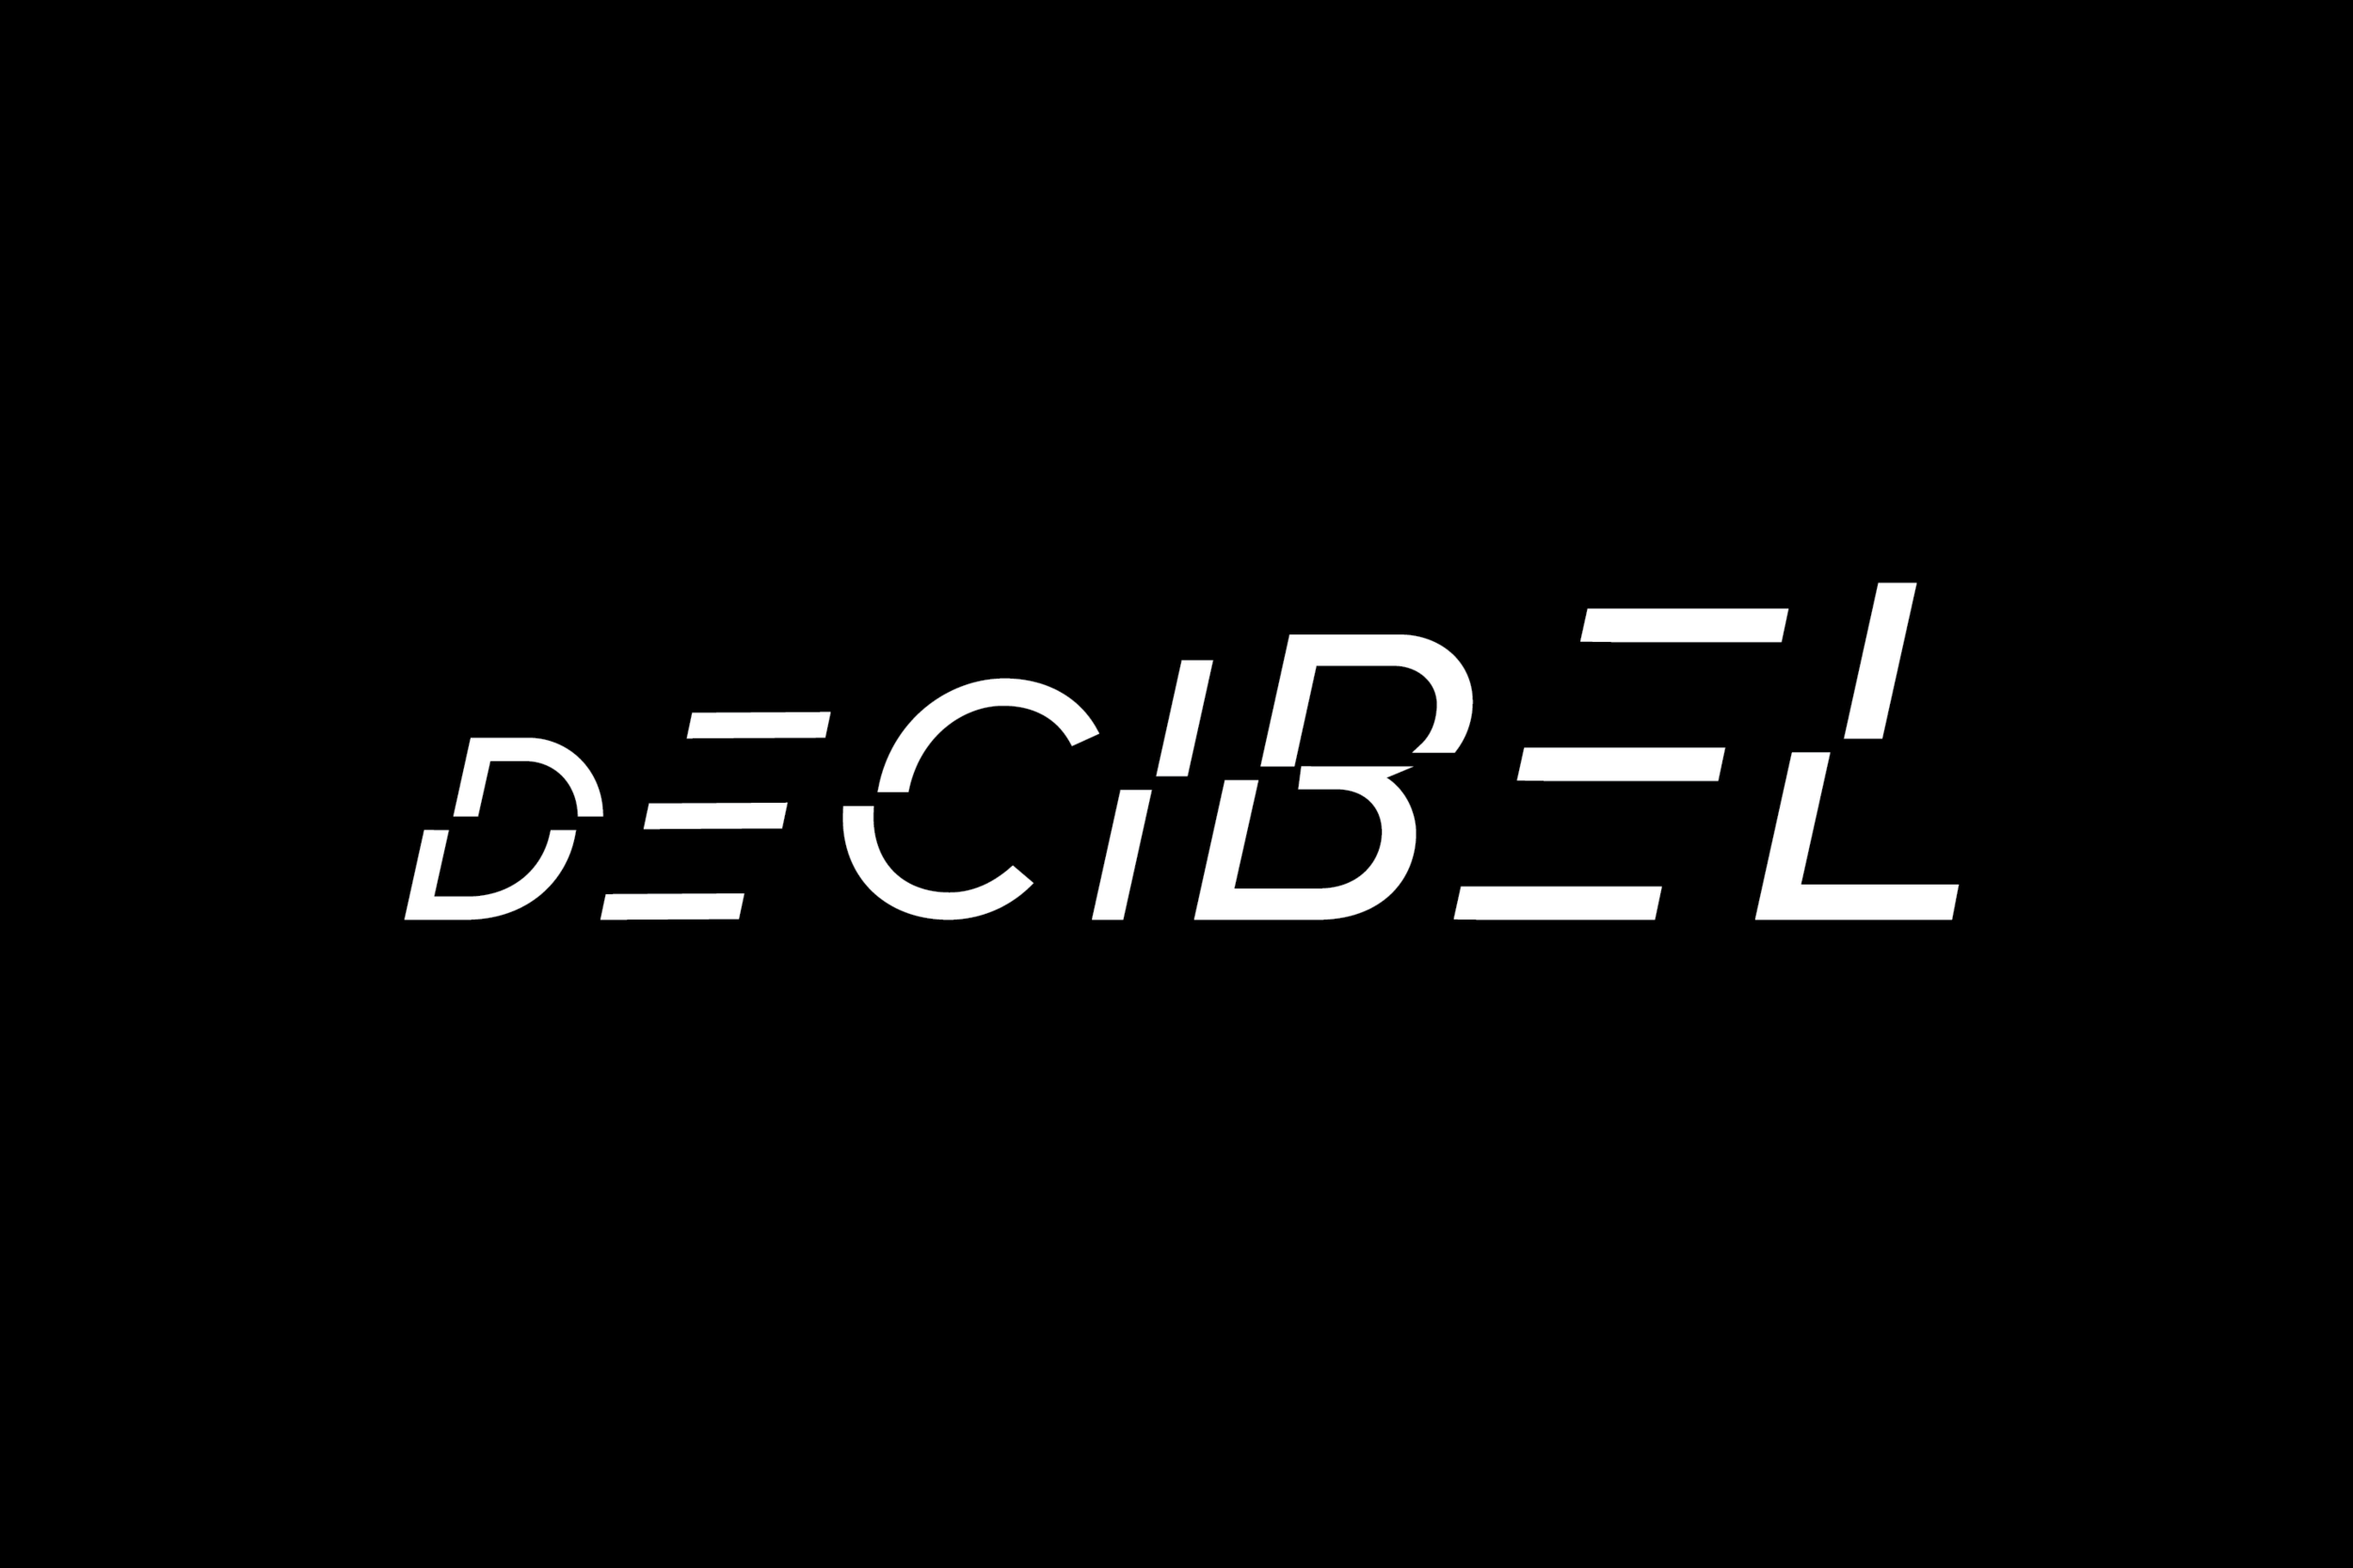 Decibel: MFA Thesis